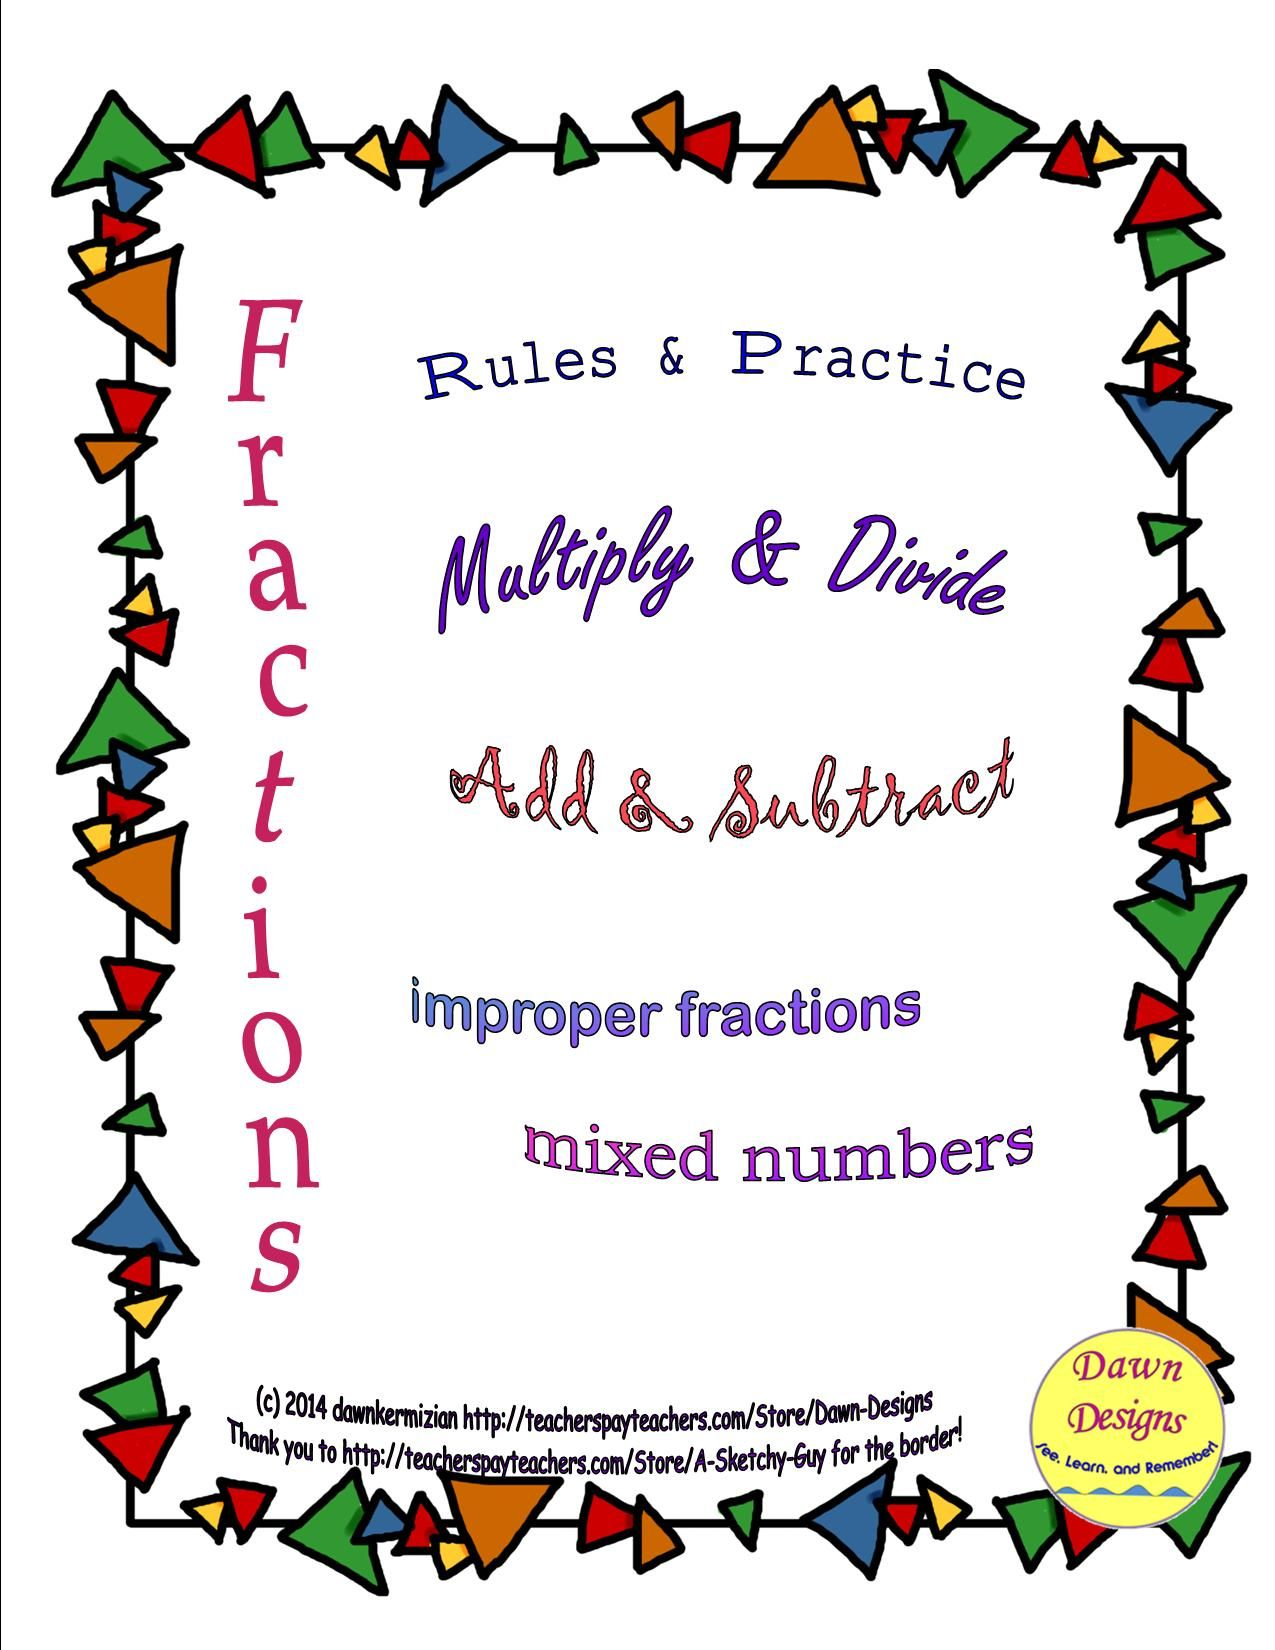 Fractions Mixed Numbers Rules And Practice